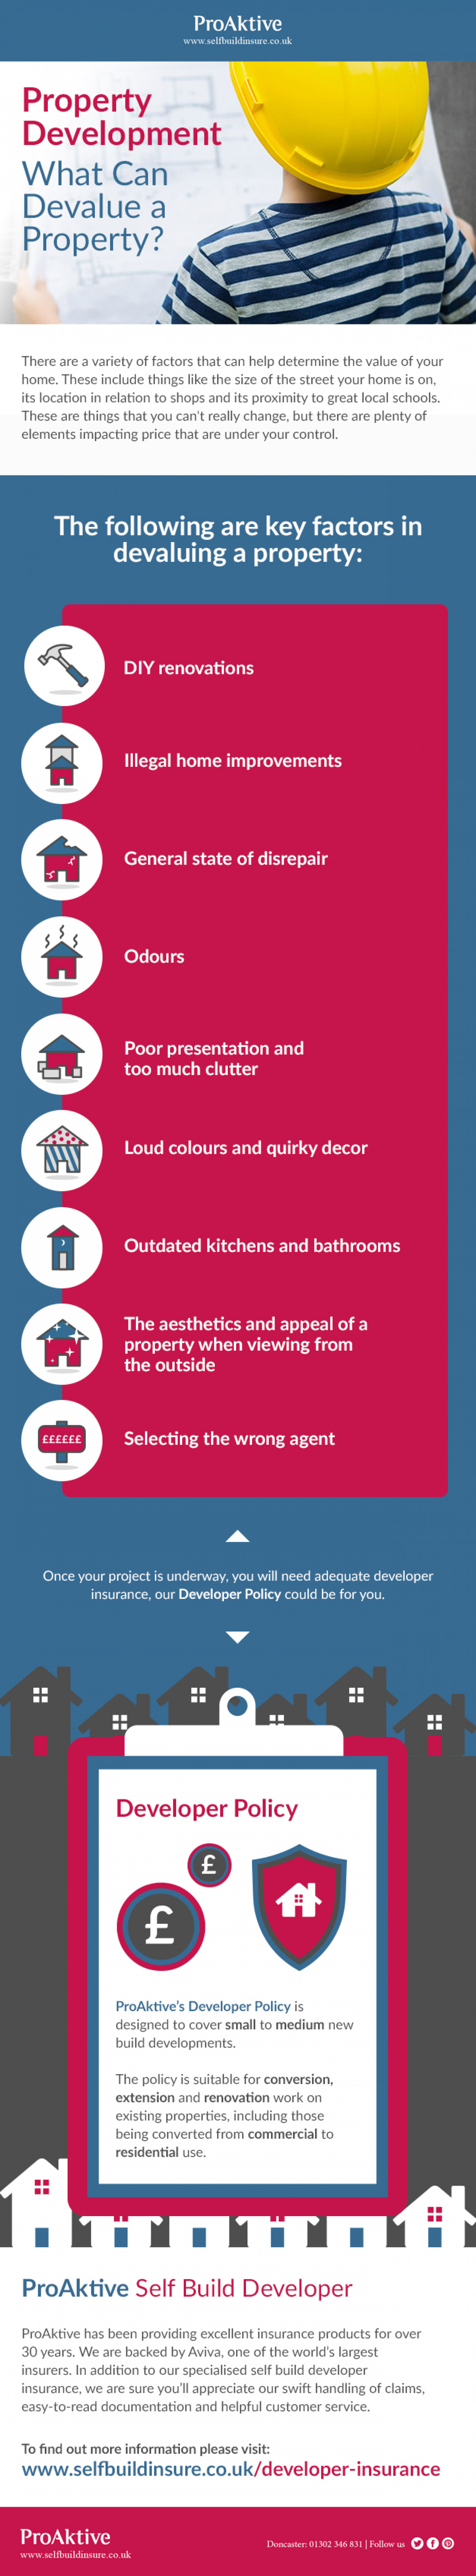 What Can Devalue a Property? Infographic